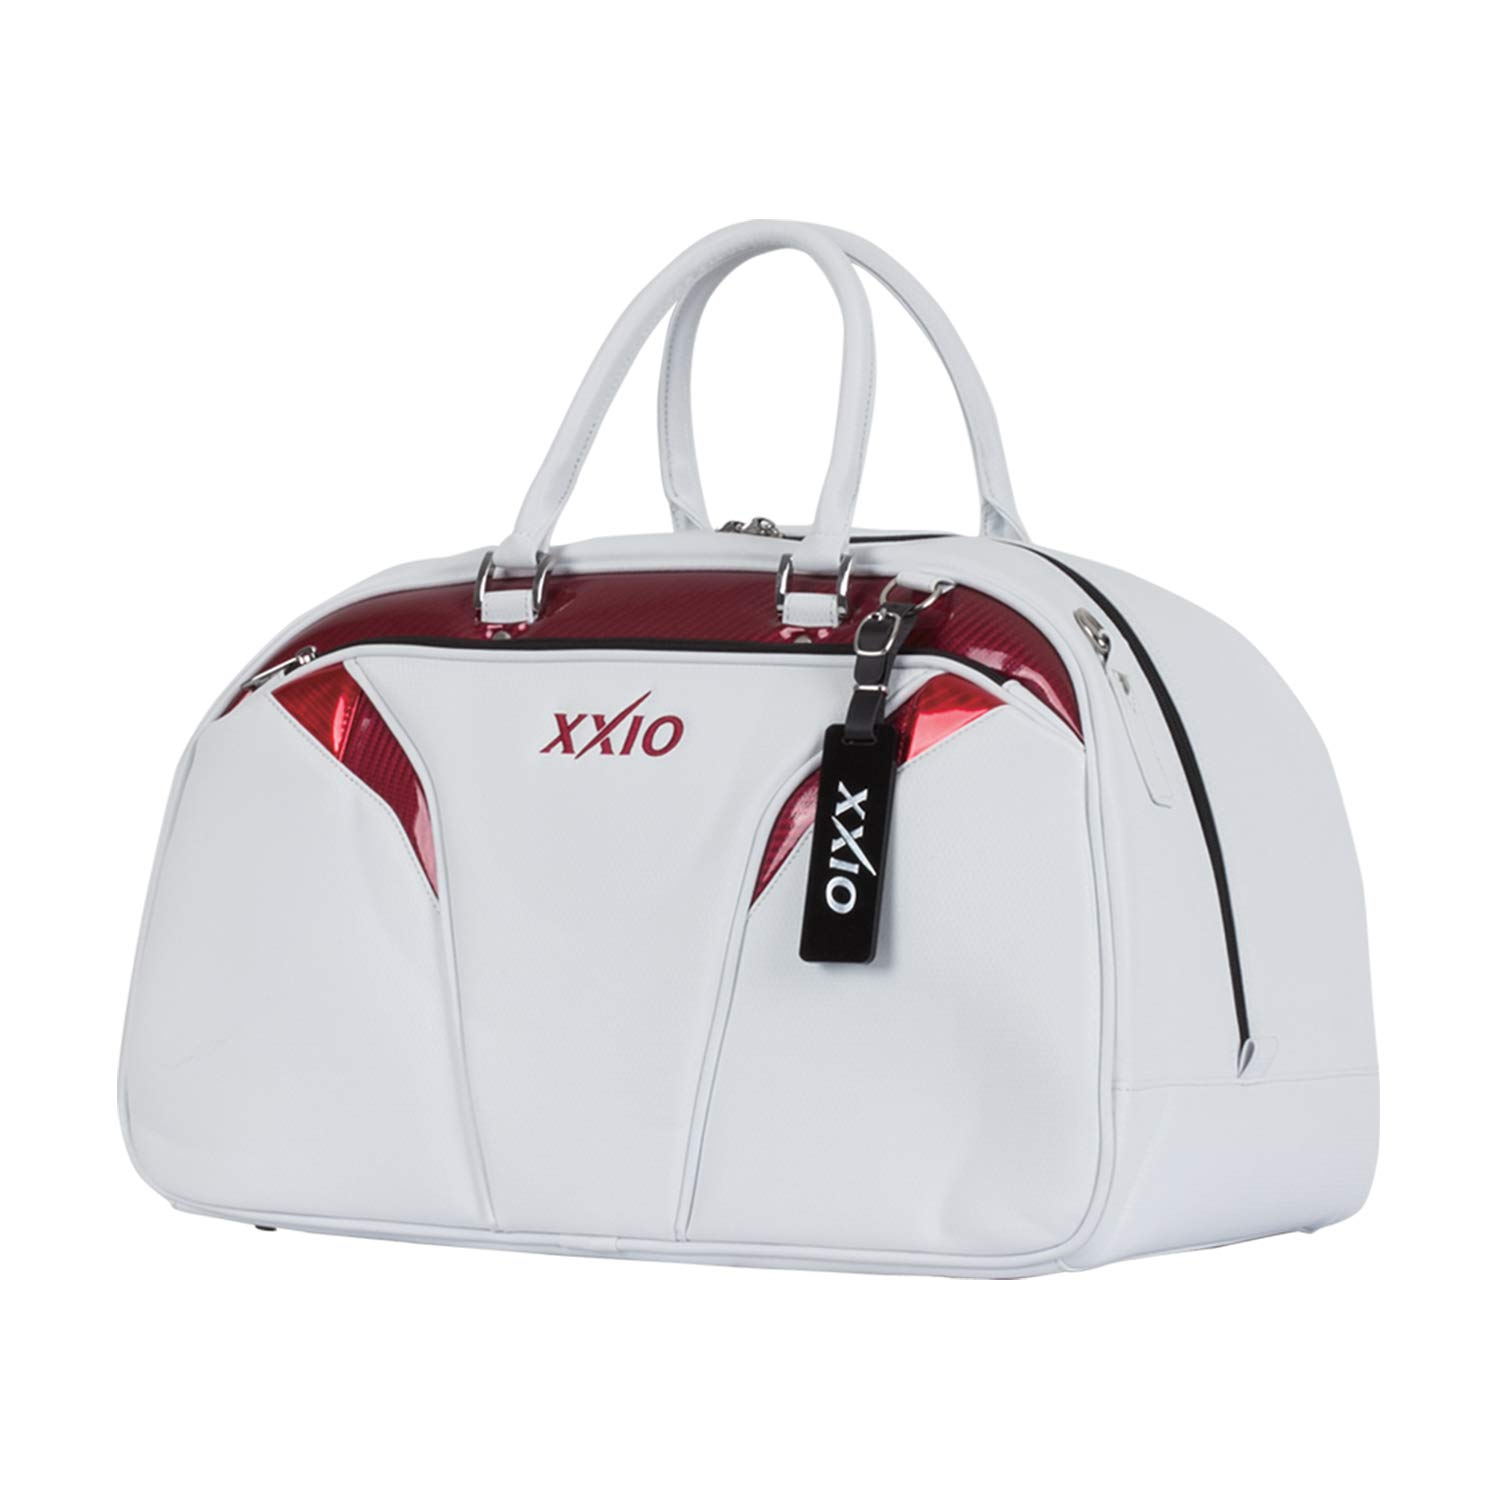 Xxio Golf Duffle Bags (Replica BB, White/Red, GGB-X090 ...